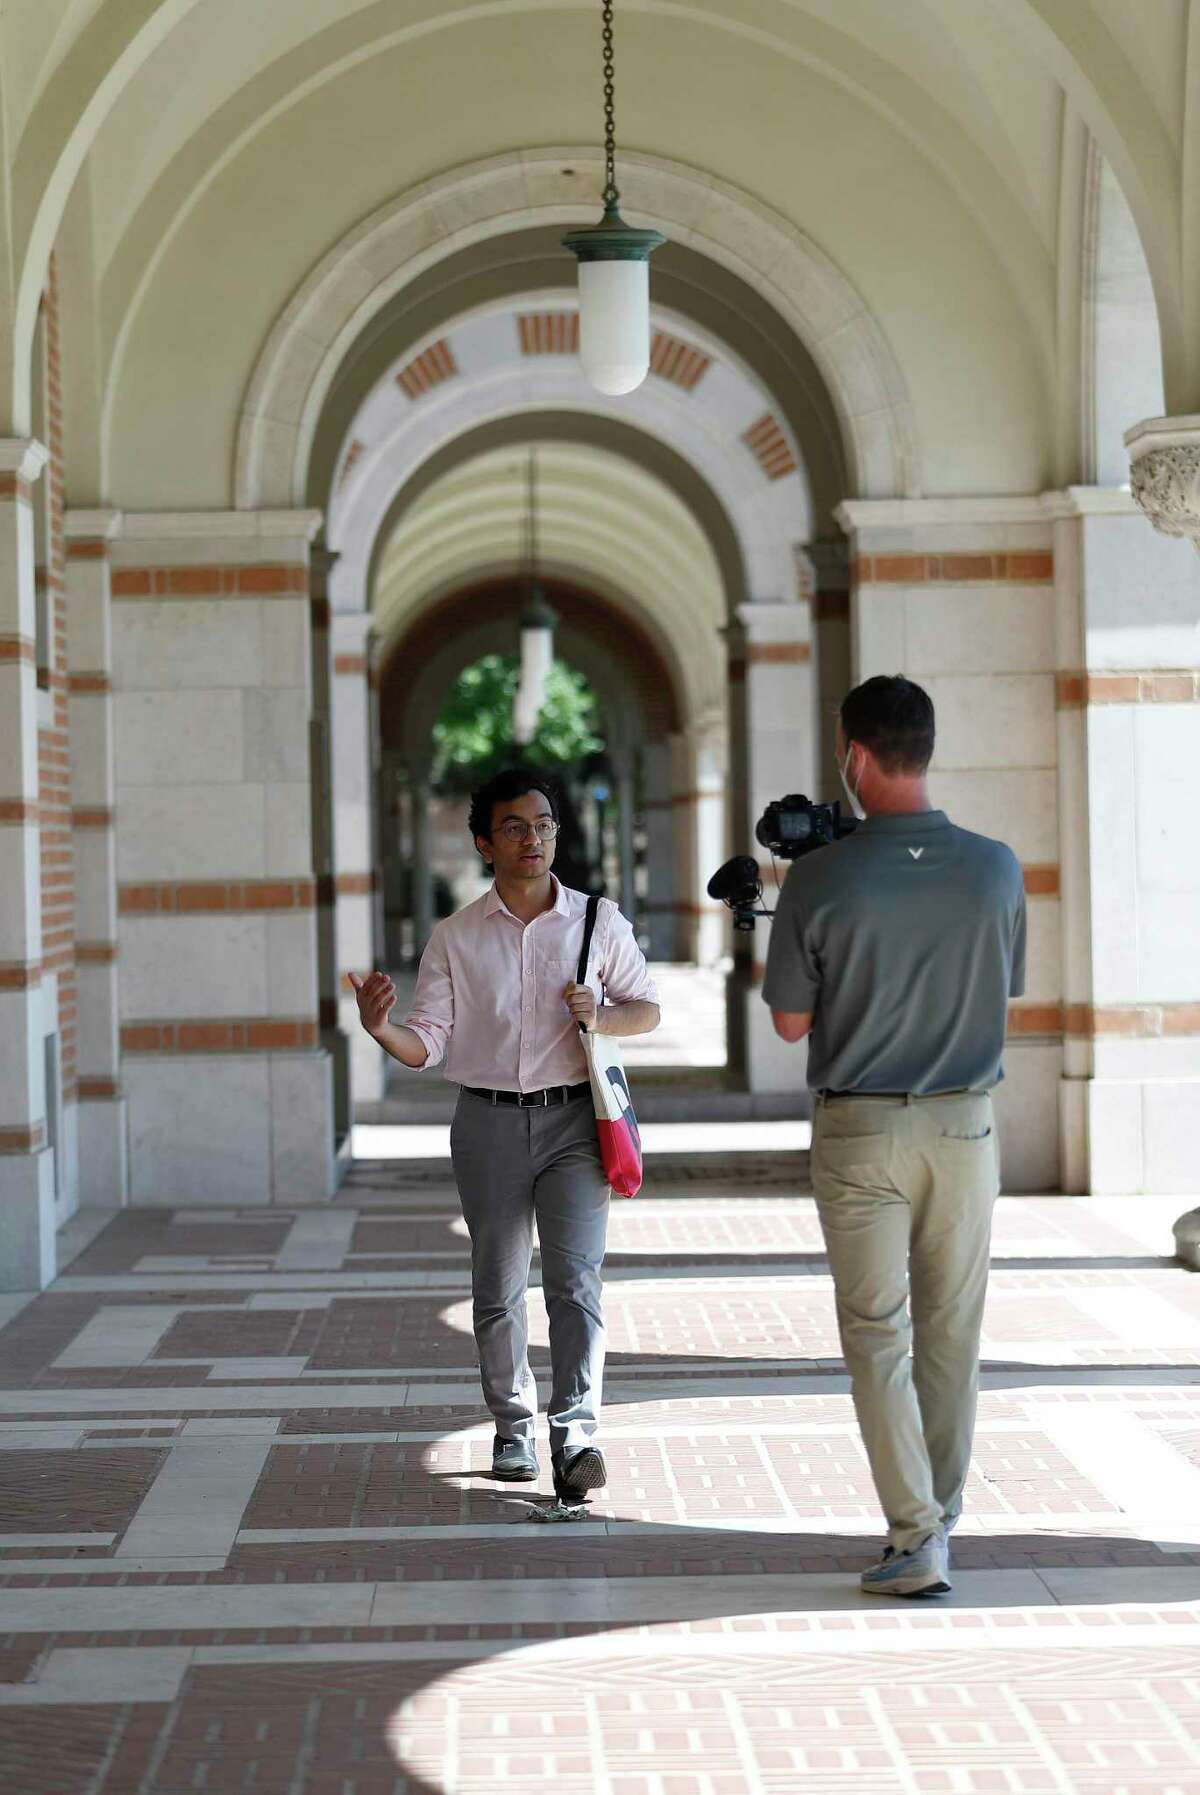 Brandon Martin, the manager of videography at Rice University, shoots video footage of Shree Kale, who graduated from the School of Architecture, on the Rice campus in Houston, Friday, May 1, 2020.